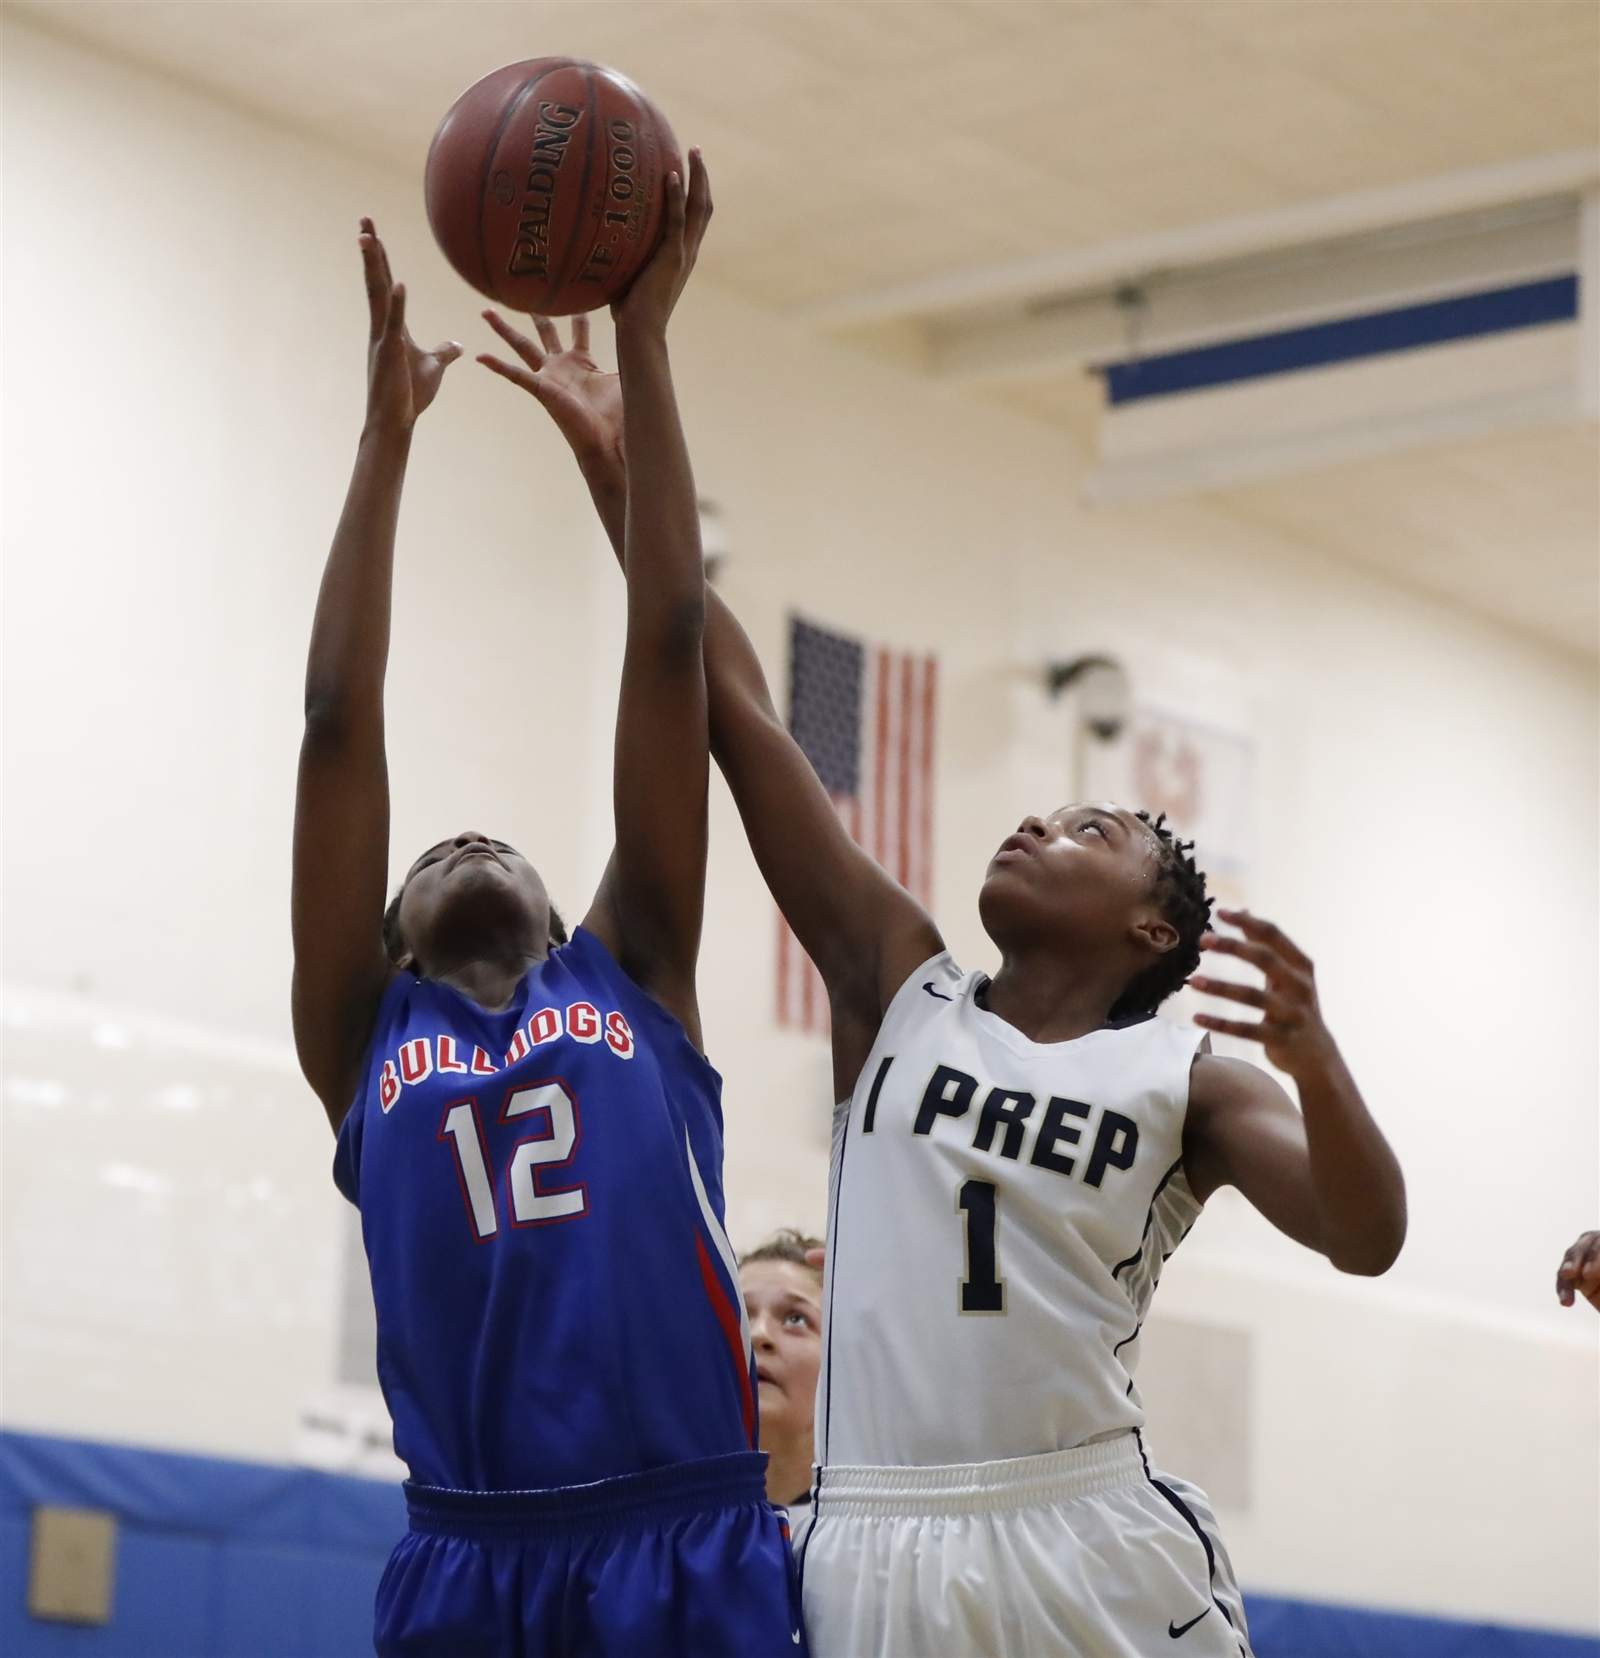 Burgardu2019s Malieka Truitt and I-Prepu2019s Anya Green battle for a rebound during first-half action at International Prep at Grover on Thursday, Feb. 9, 2017. (Harry Scull Jr./Buffalo News)